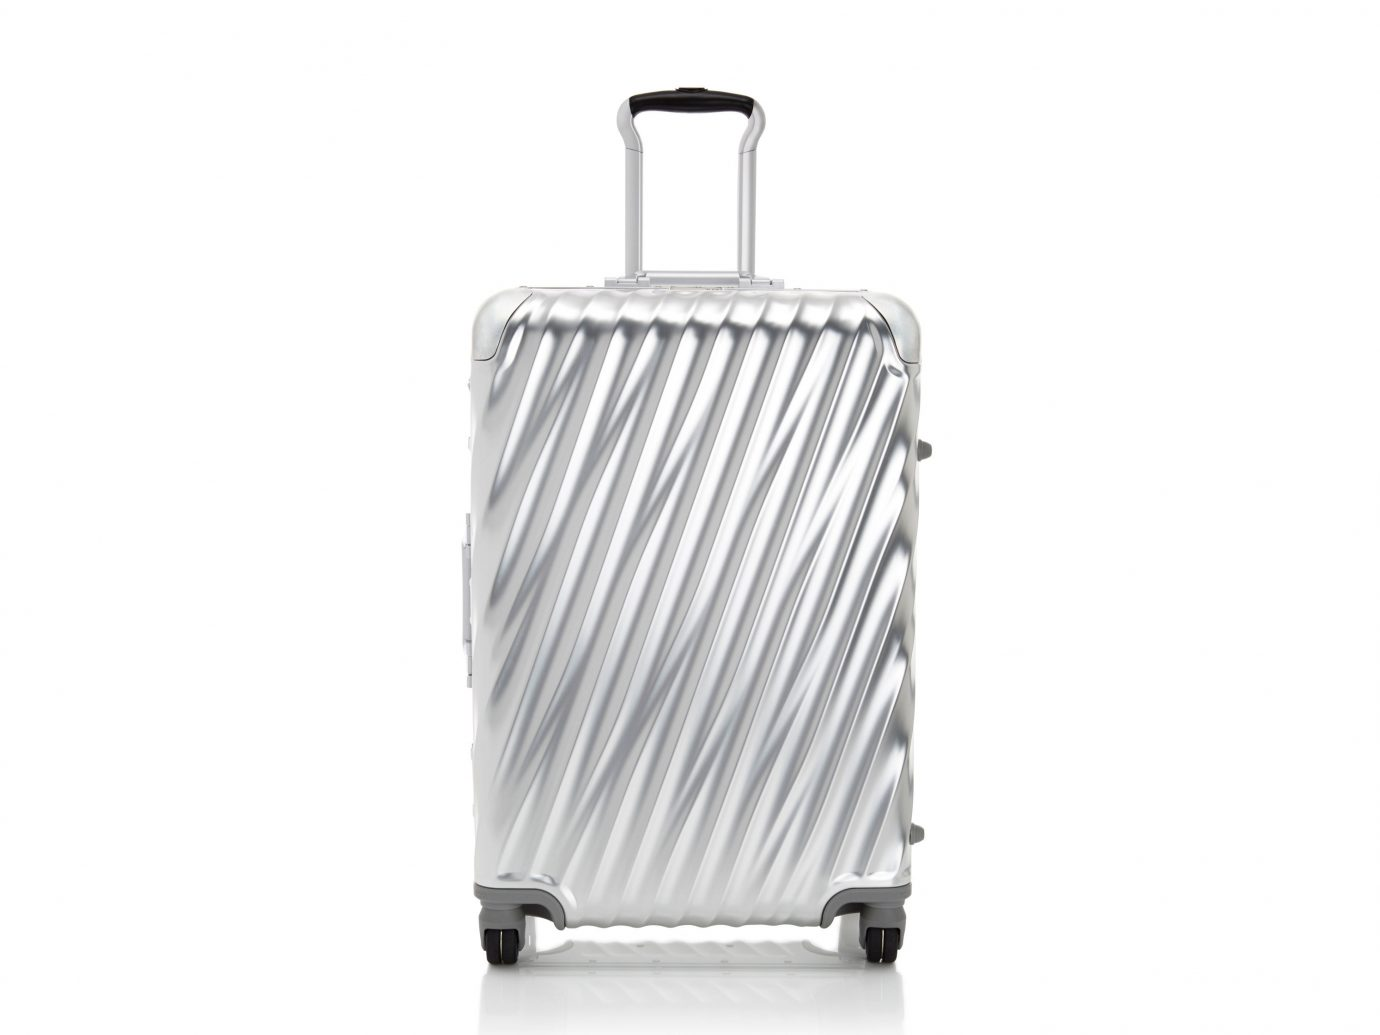 Style + Design product suitcase hand luggage